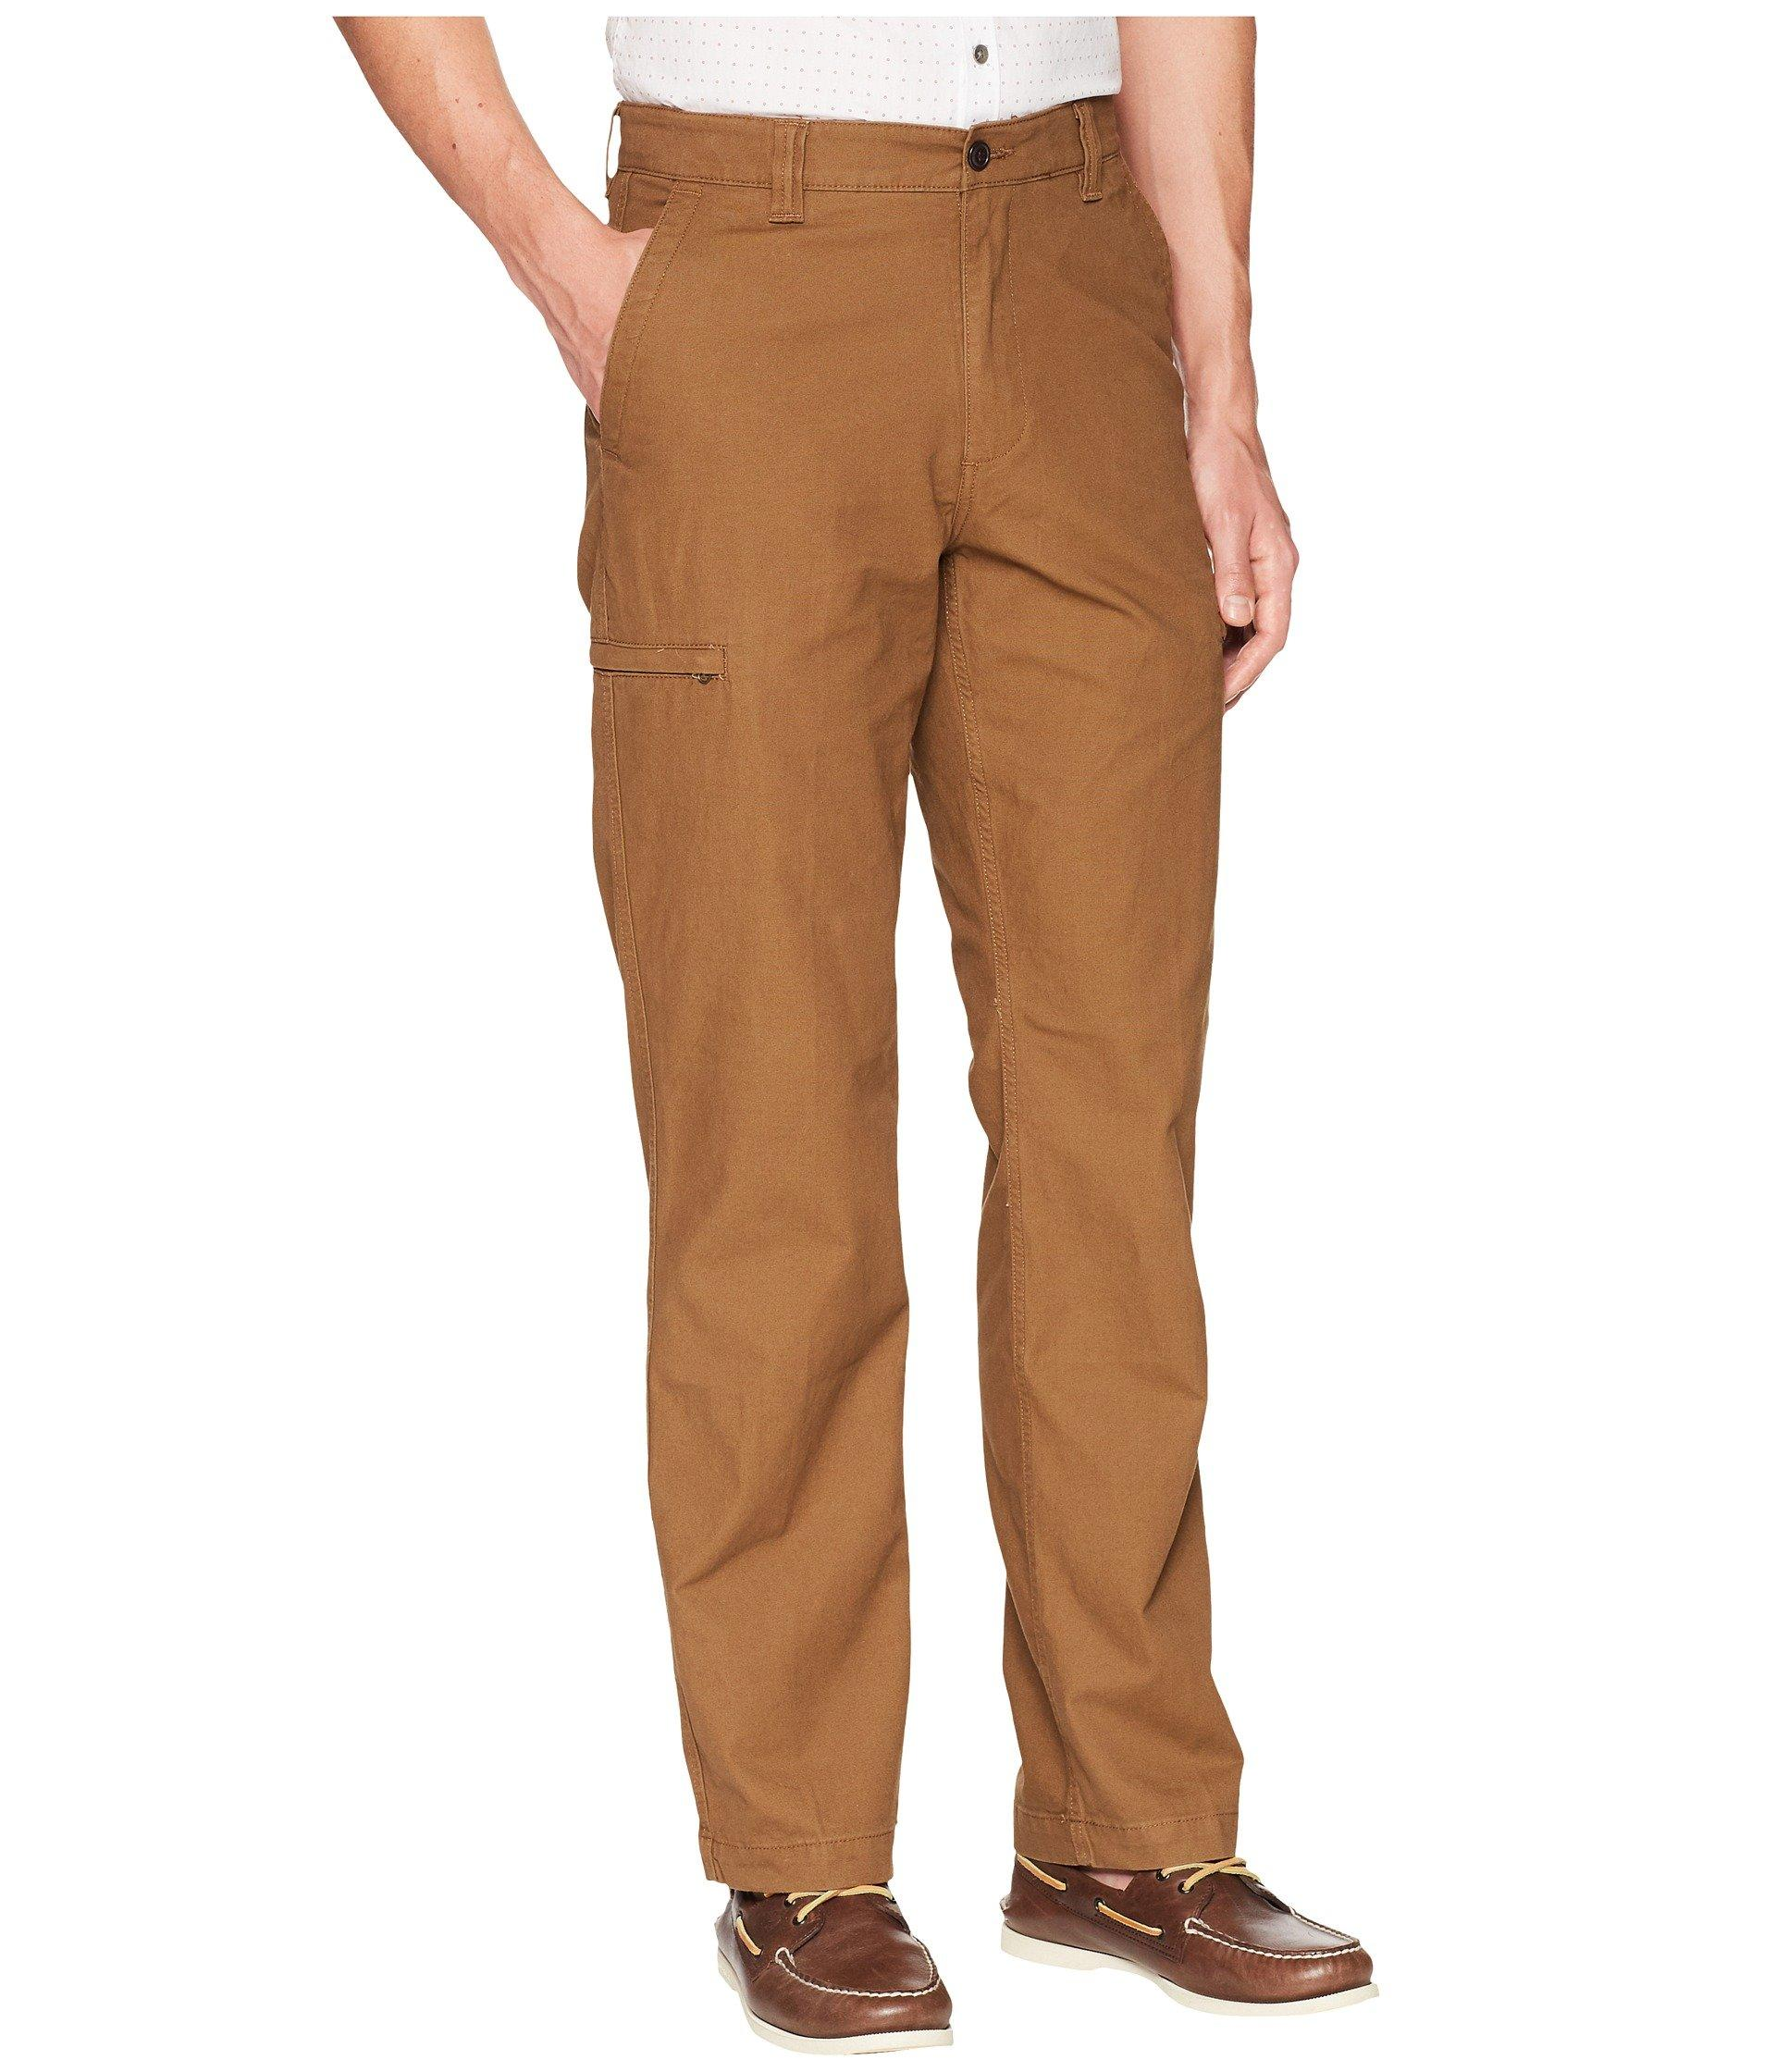 35b0db739f1 Dockers - Brown Straight Fit Utility Cargo Pant for Men - Lyst. View  fullscreen